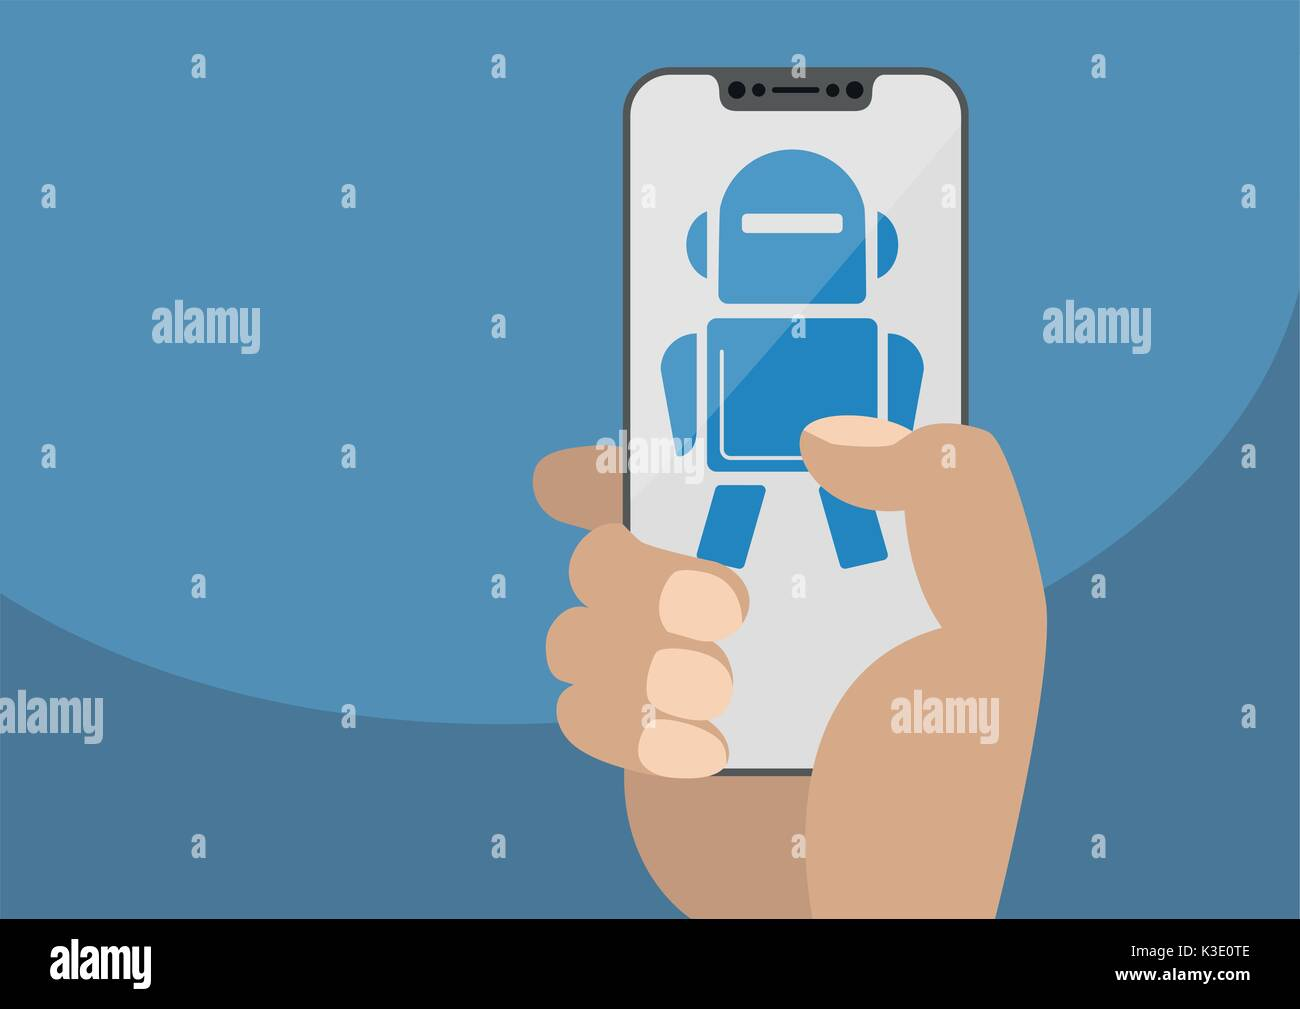 Hand holding modern bezel free smartphone. Robot icon displayed on touchscreen as concept for automation or digitalization Stock Vector